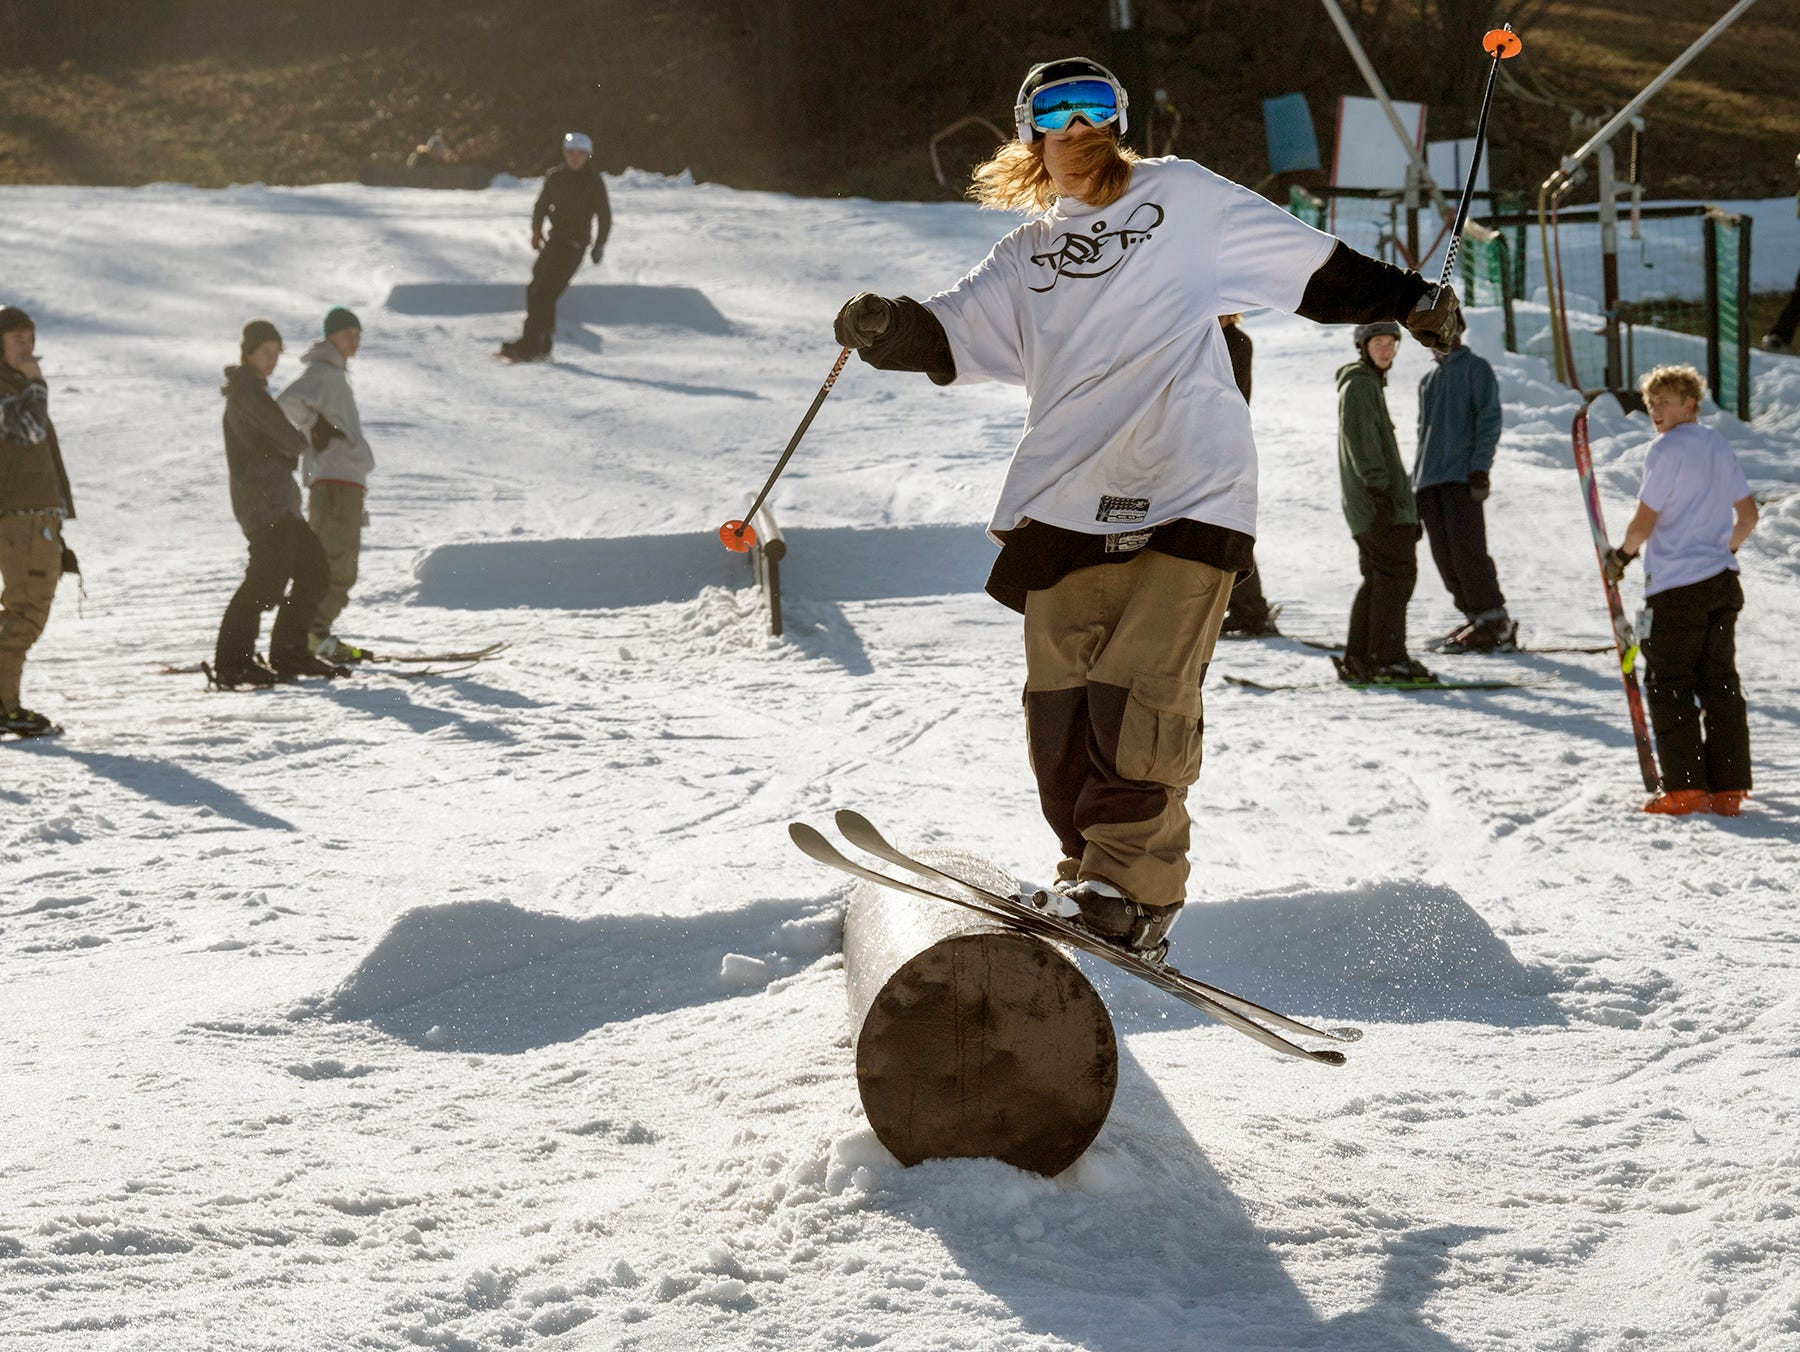 Skiers come through the freestyle area at Roundtop Mountain Resort.